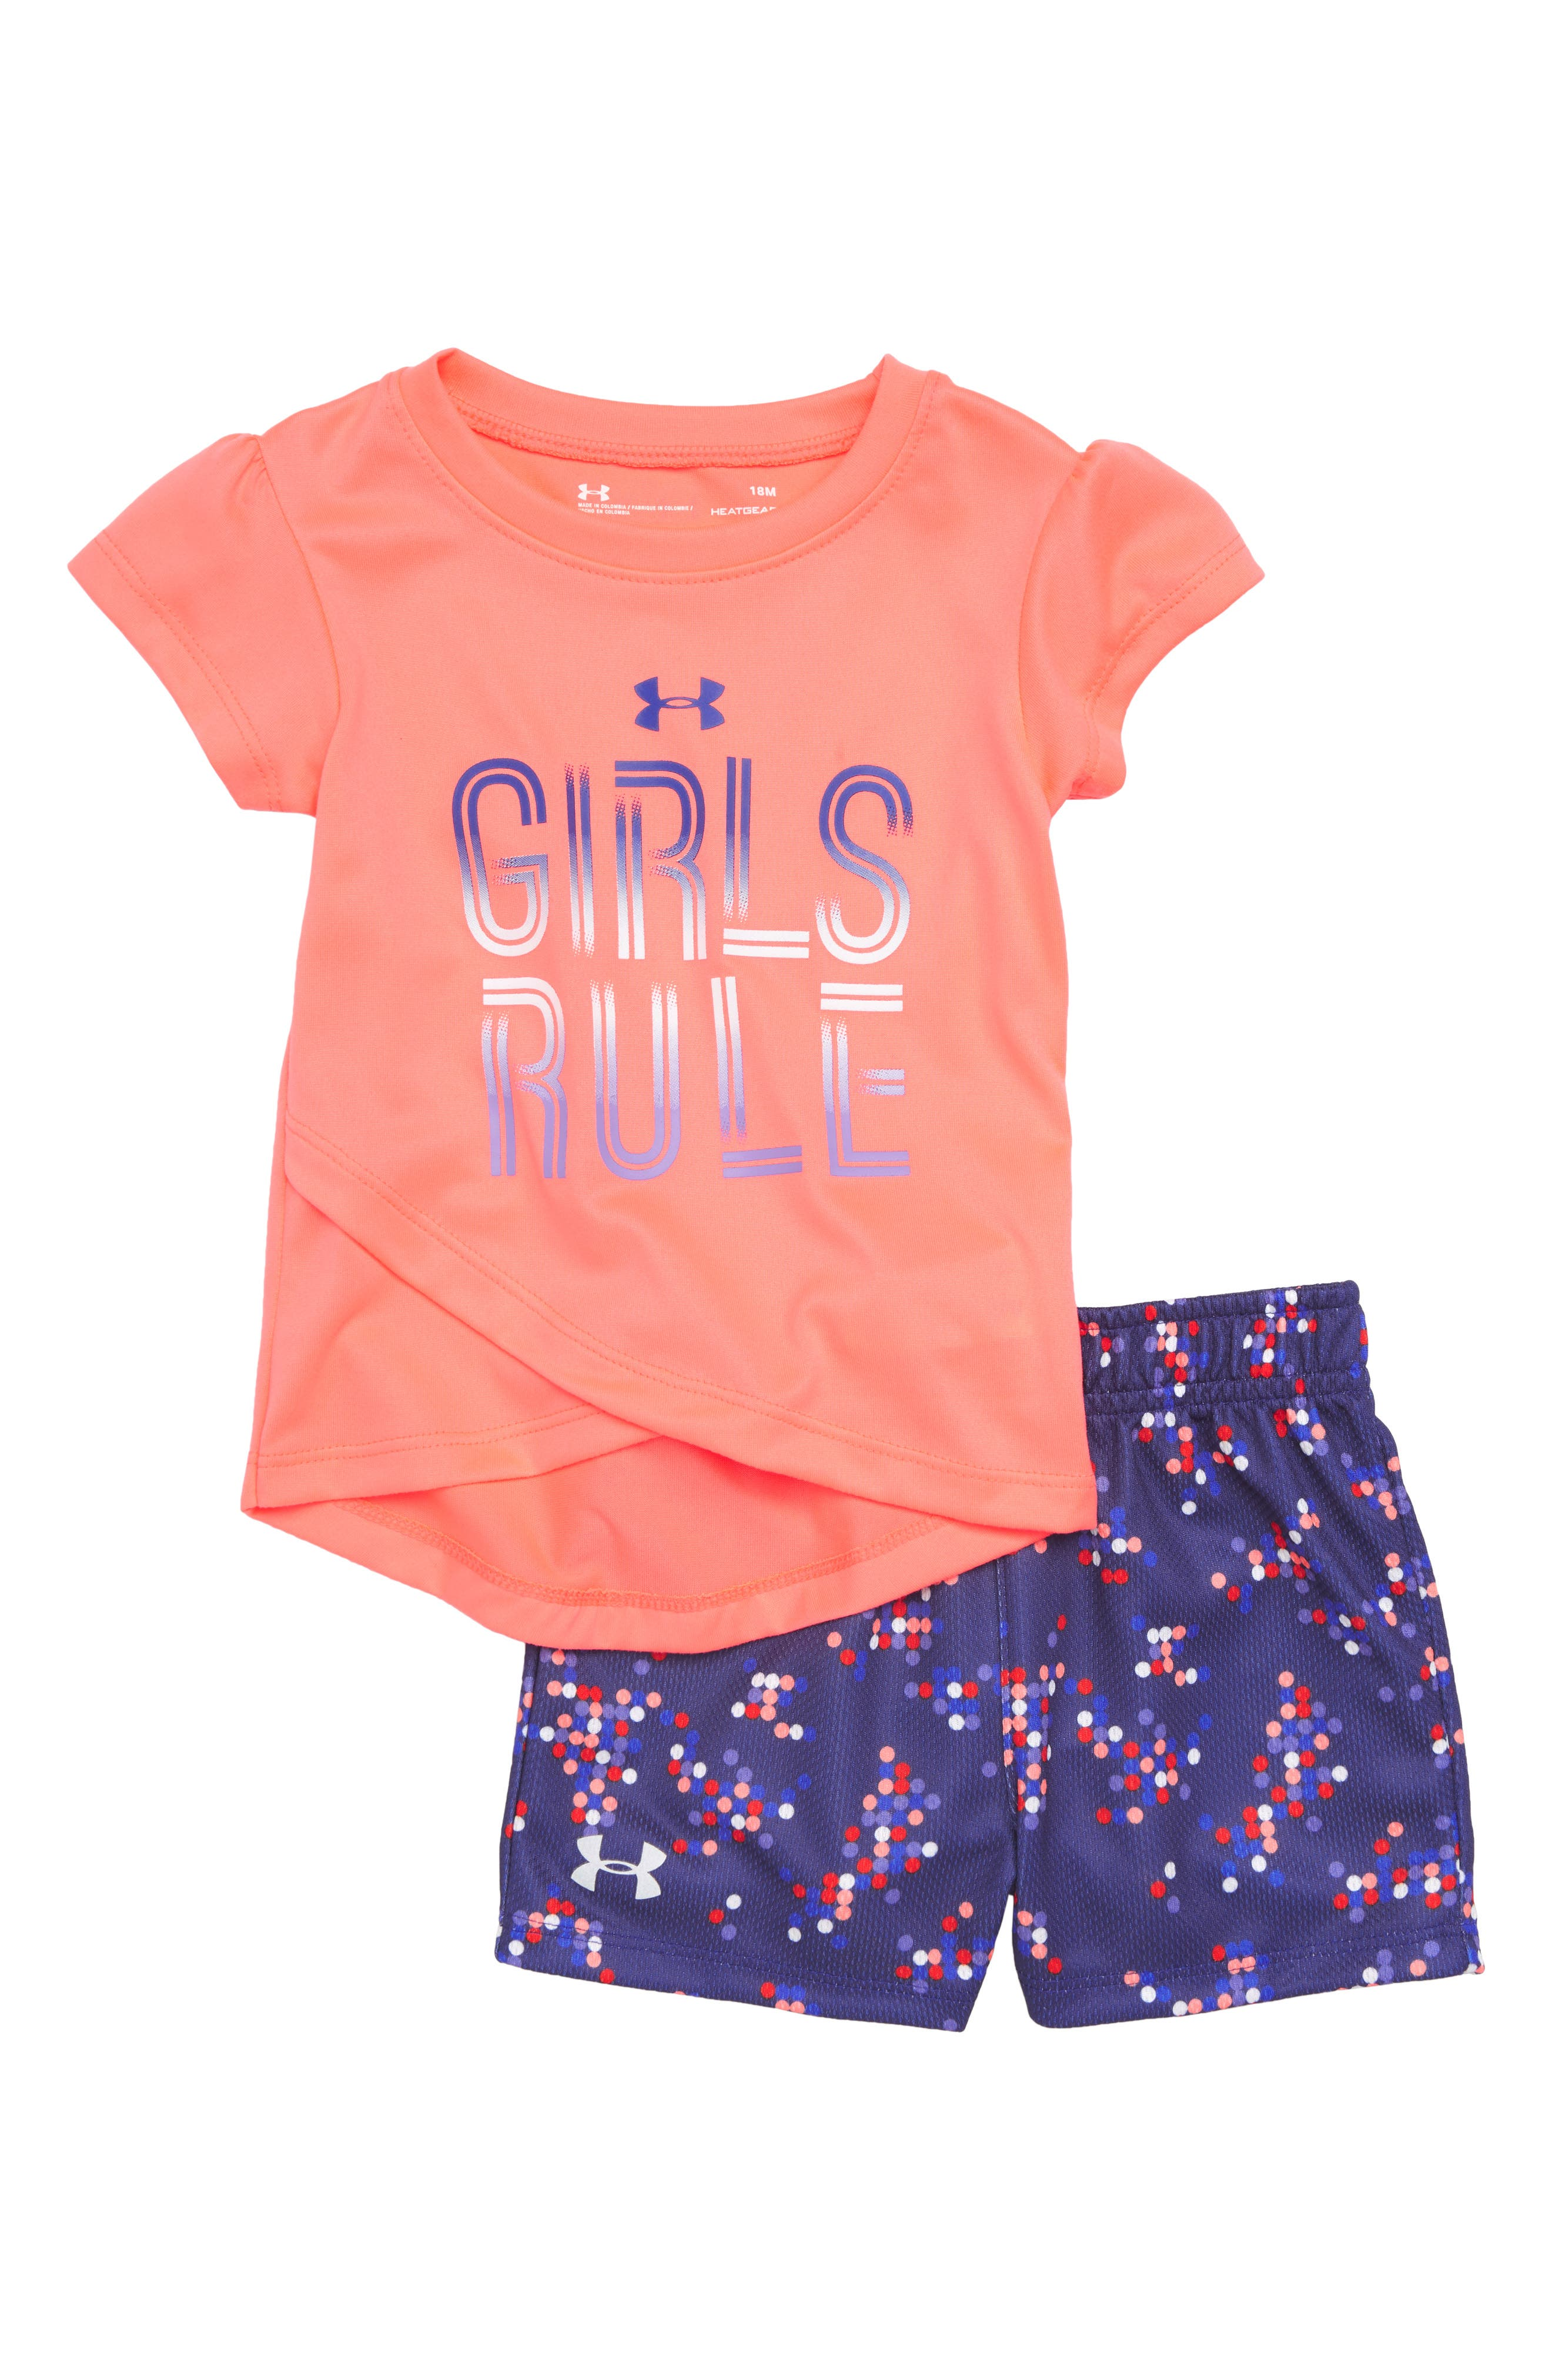 Girls Rule Tee & Shorts Set,                         Main,                         color, 950